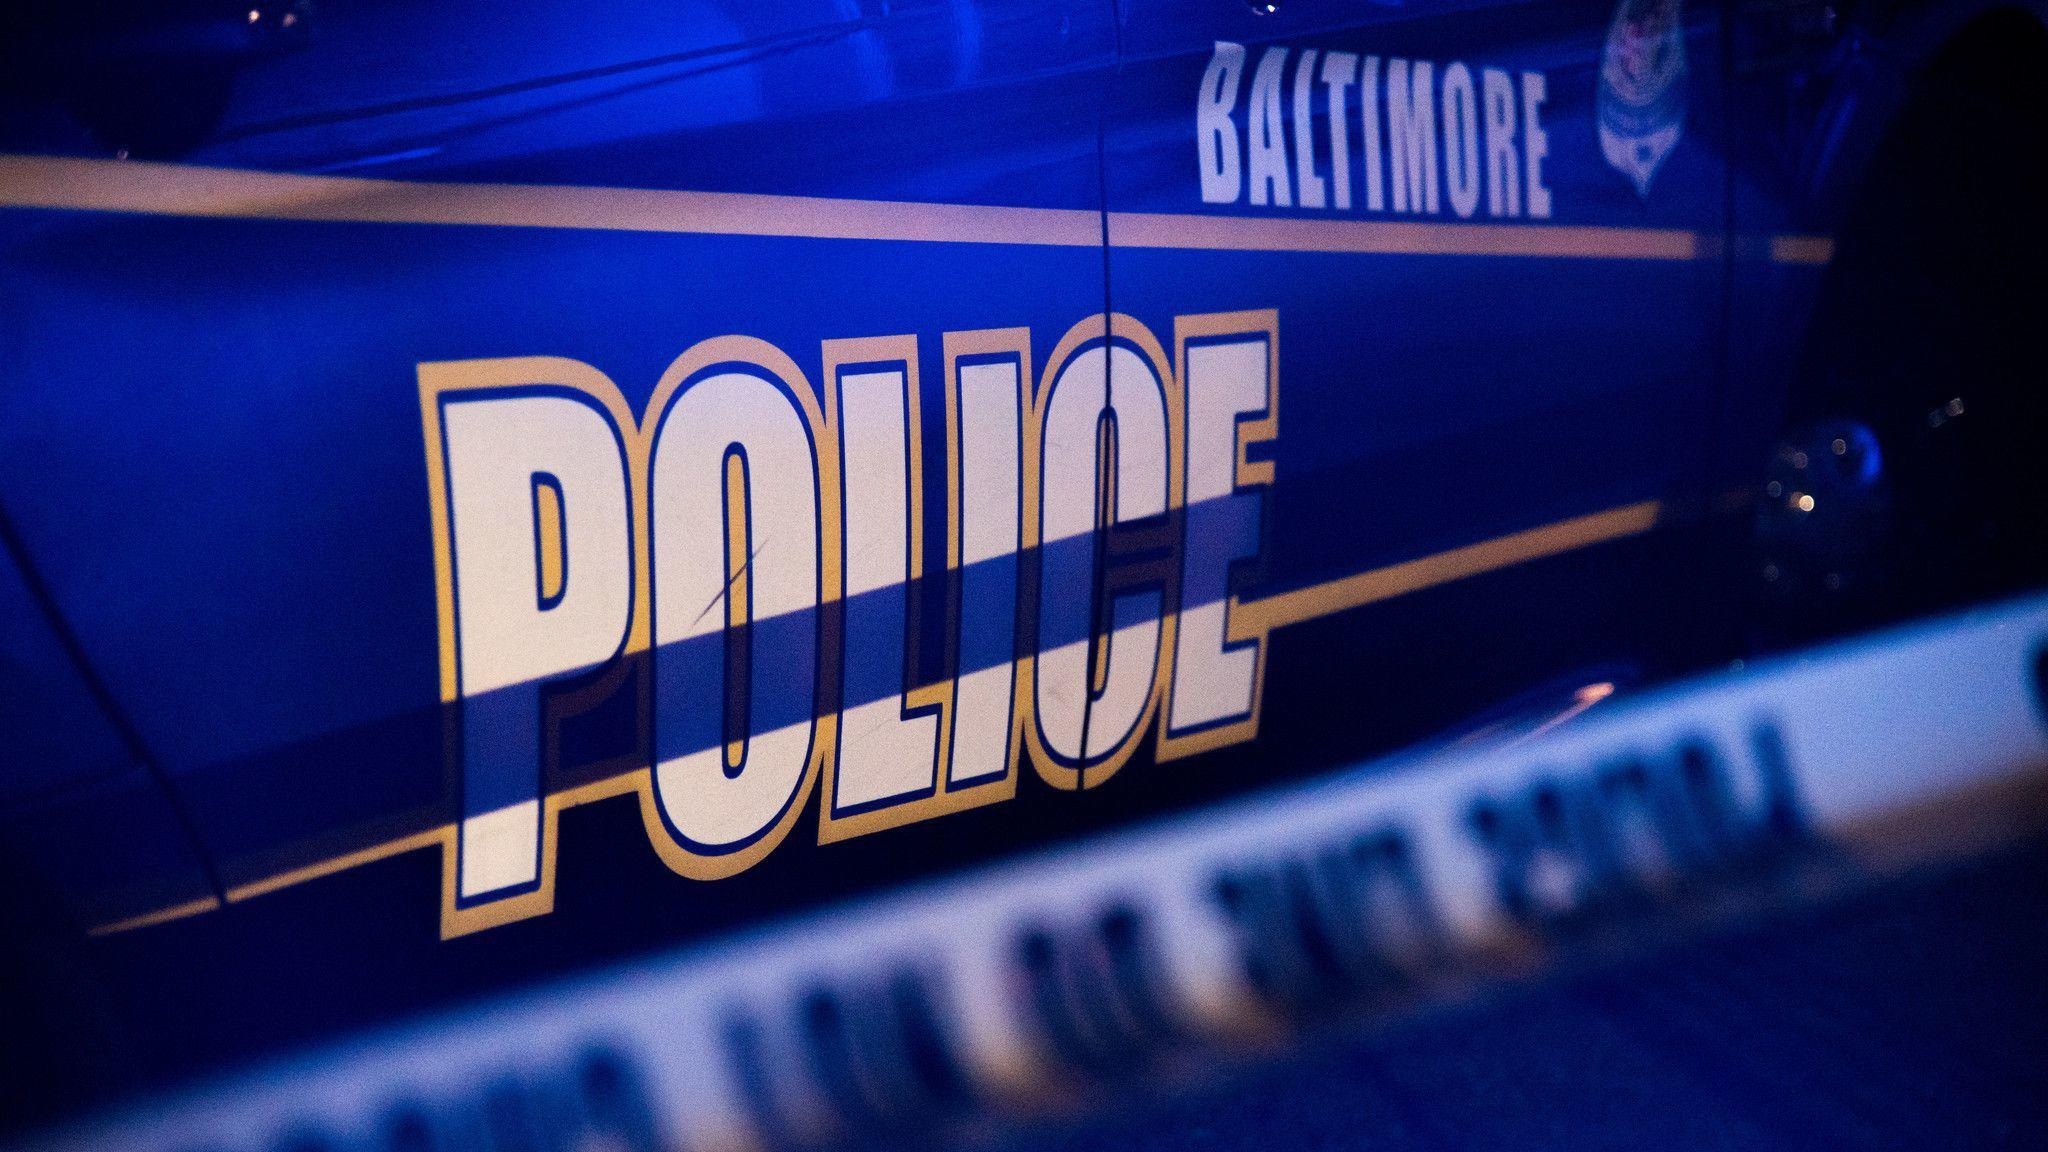 Man in critical condition after Friday night shooting in Baltimore, police say